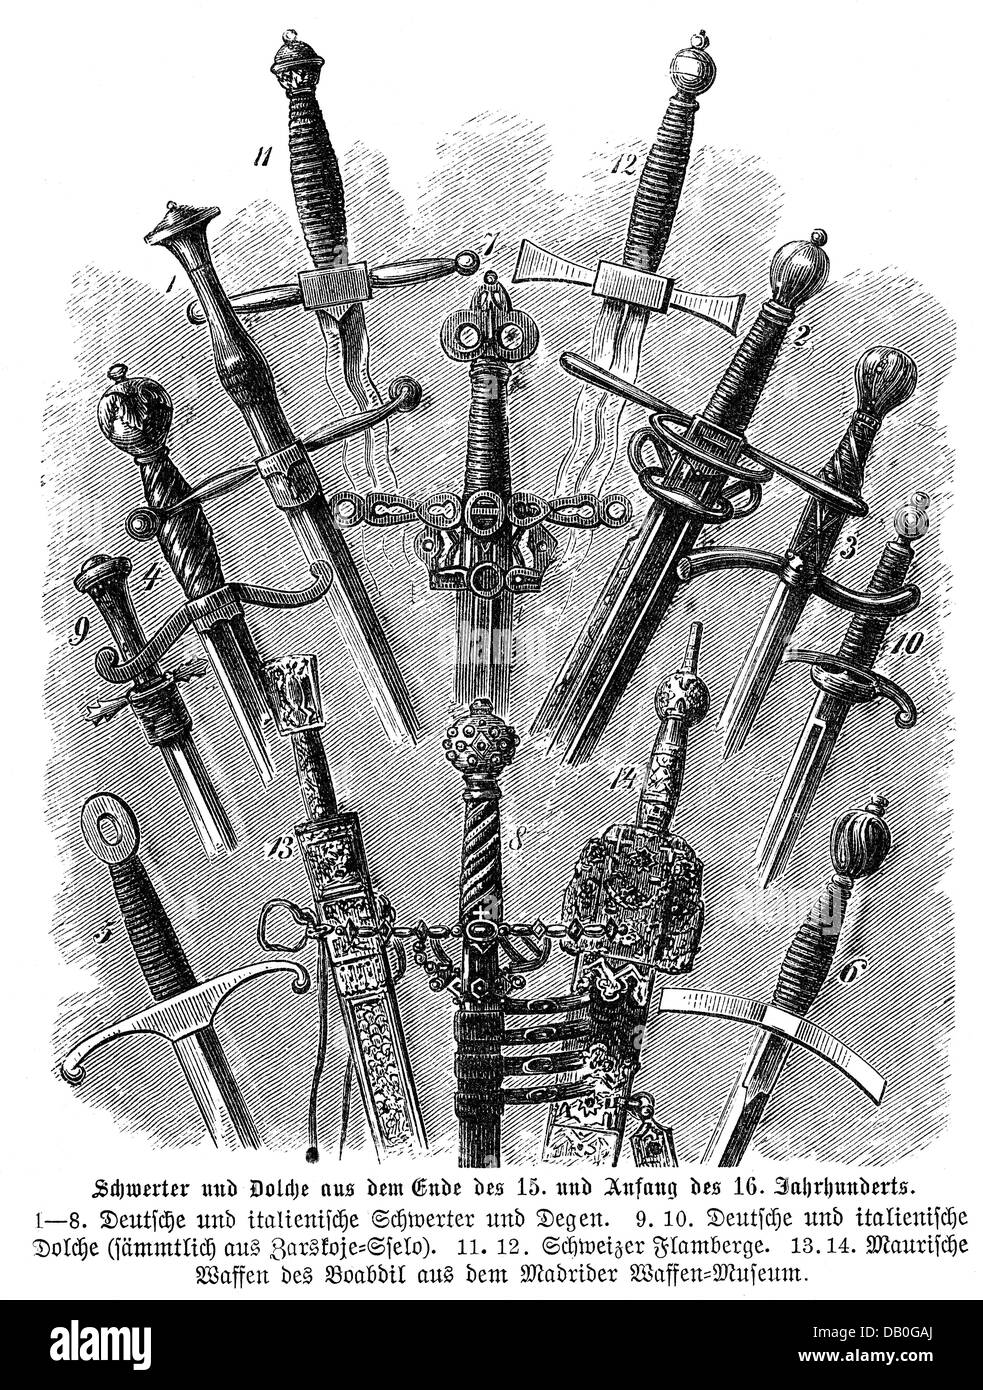 weapons, modern times, swords and daggers, late 14th / early 15th century, 1 - 8: German and Italian sword and rapiers, Stock Photo